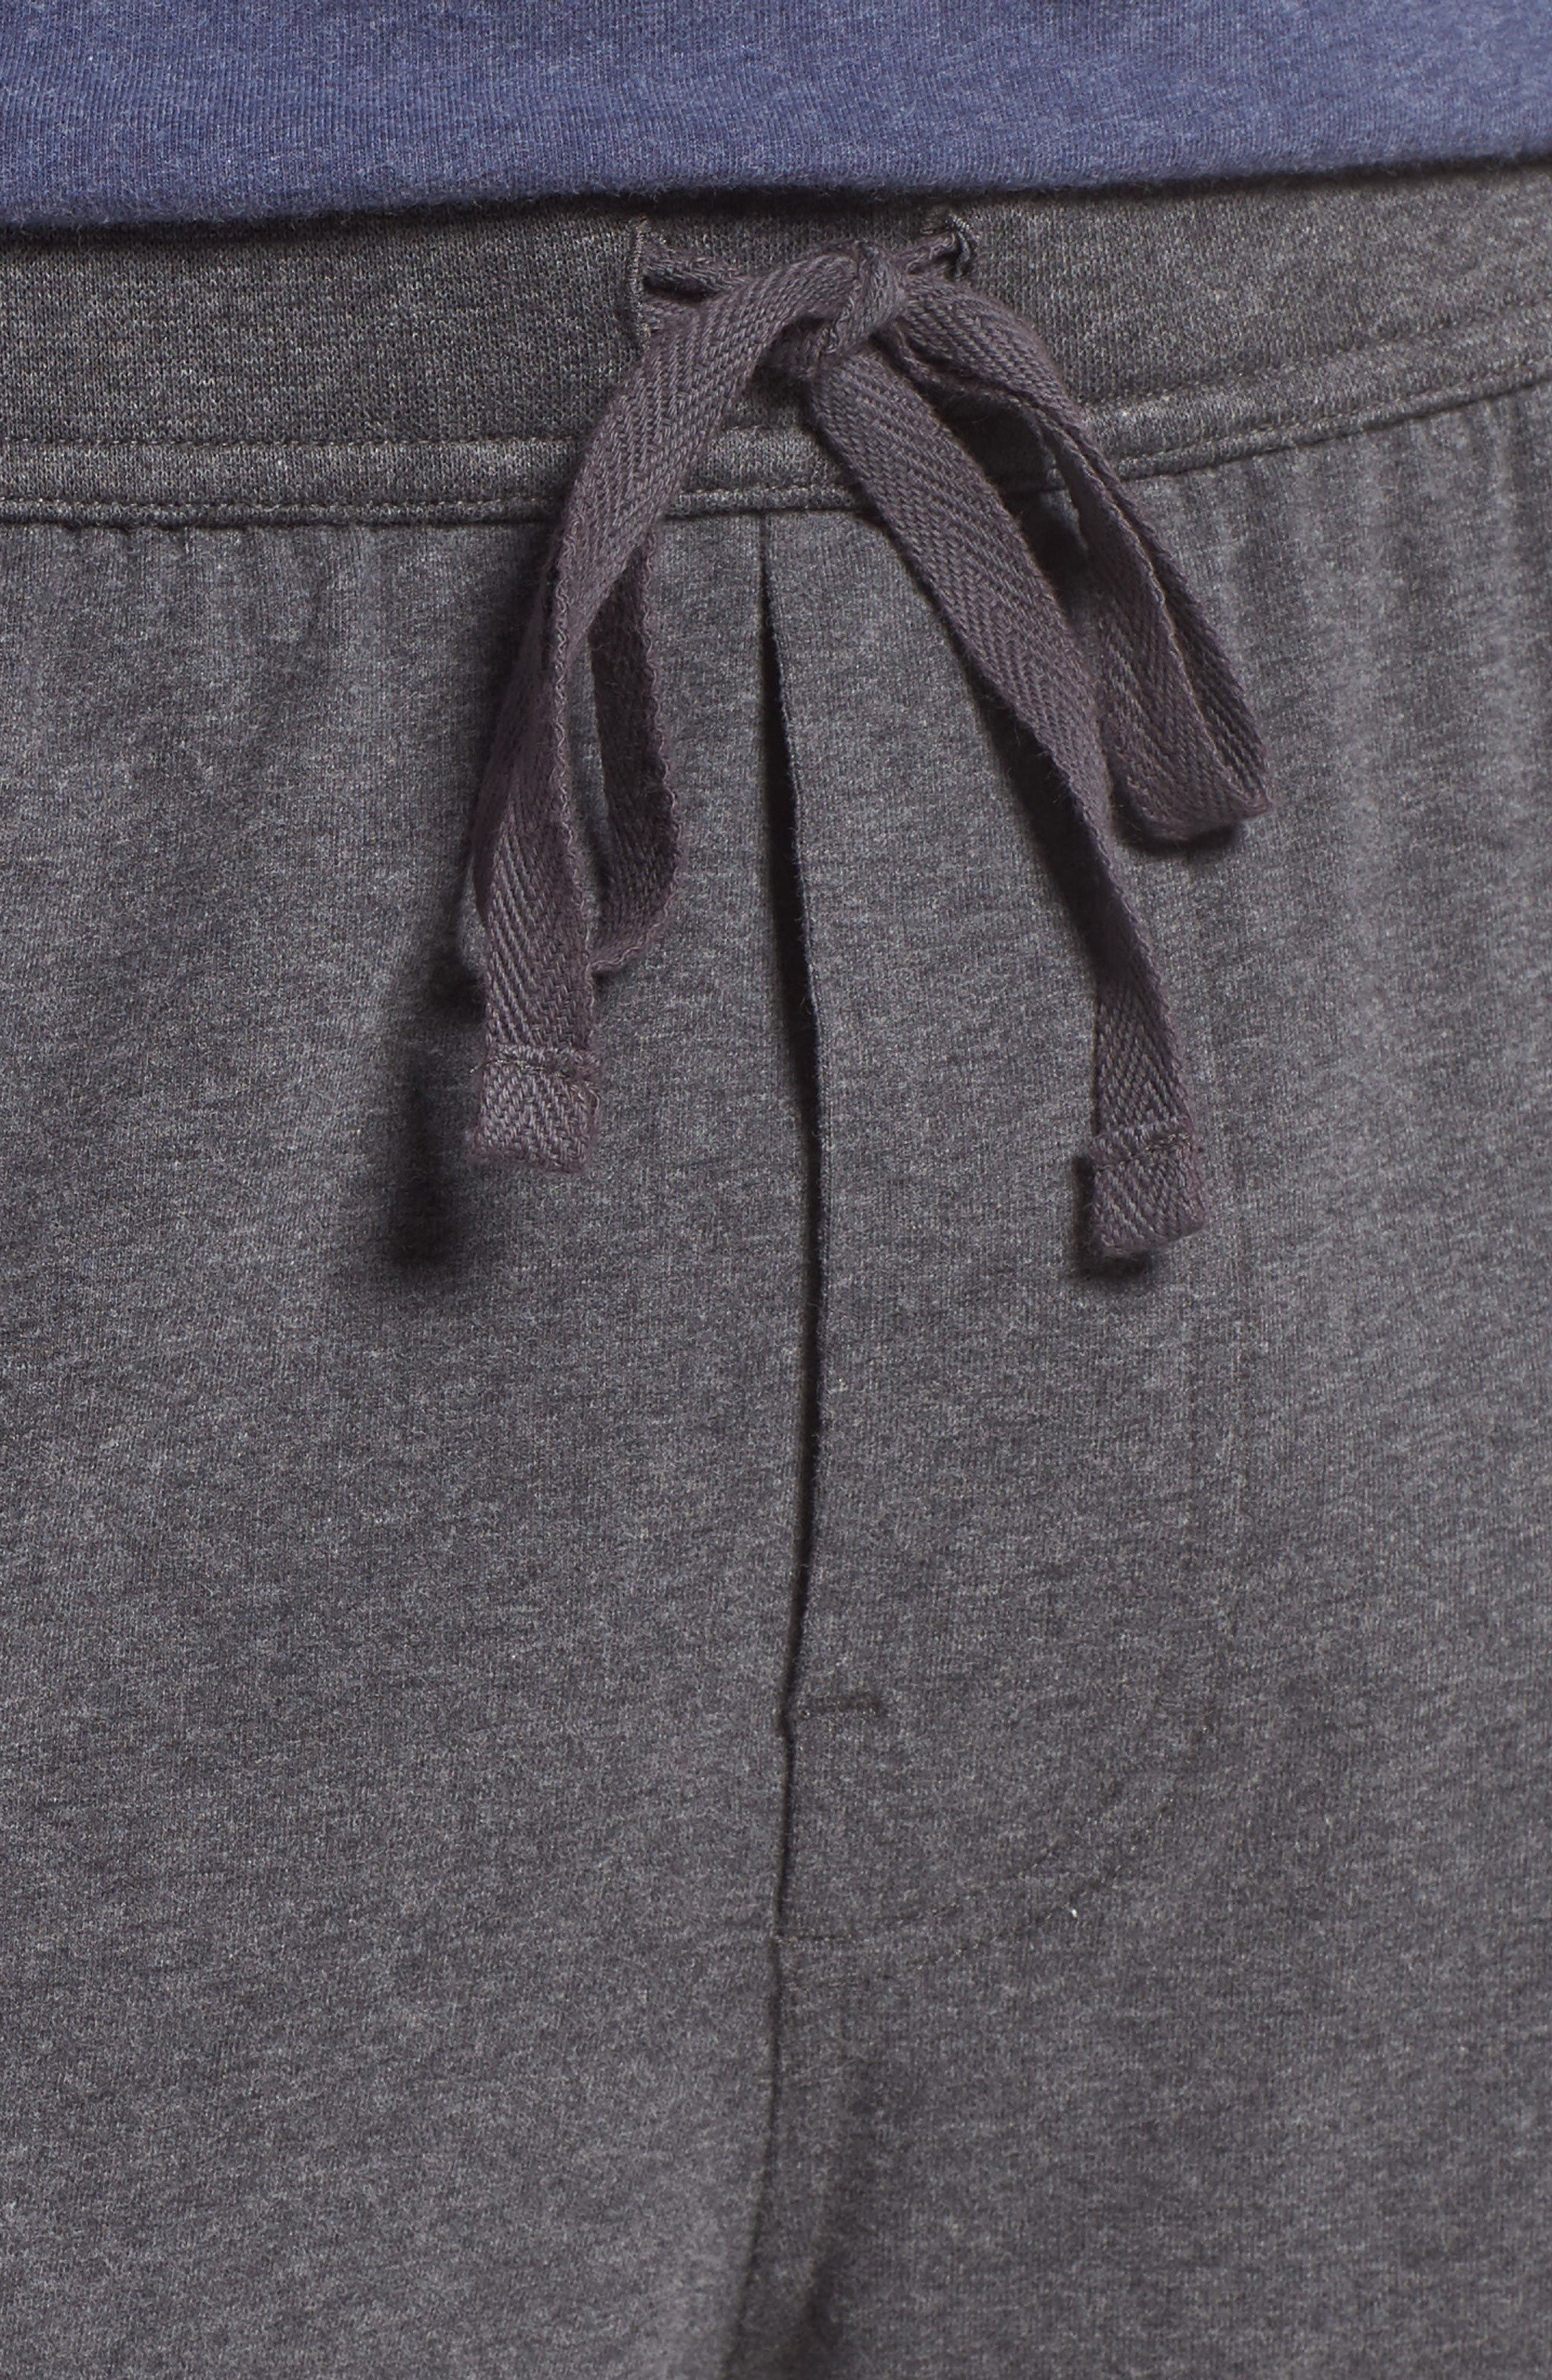 Stretch Cotton Lounge Shorts,                             Alternate thumbnail 4, color,                             Grey Charcoal